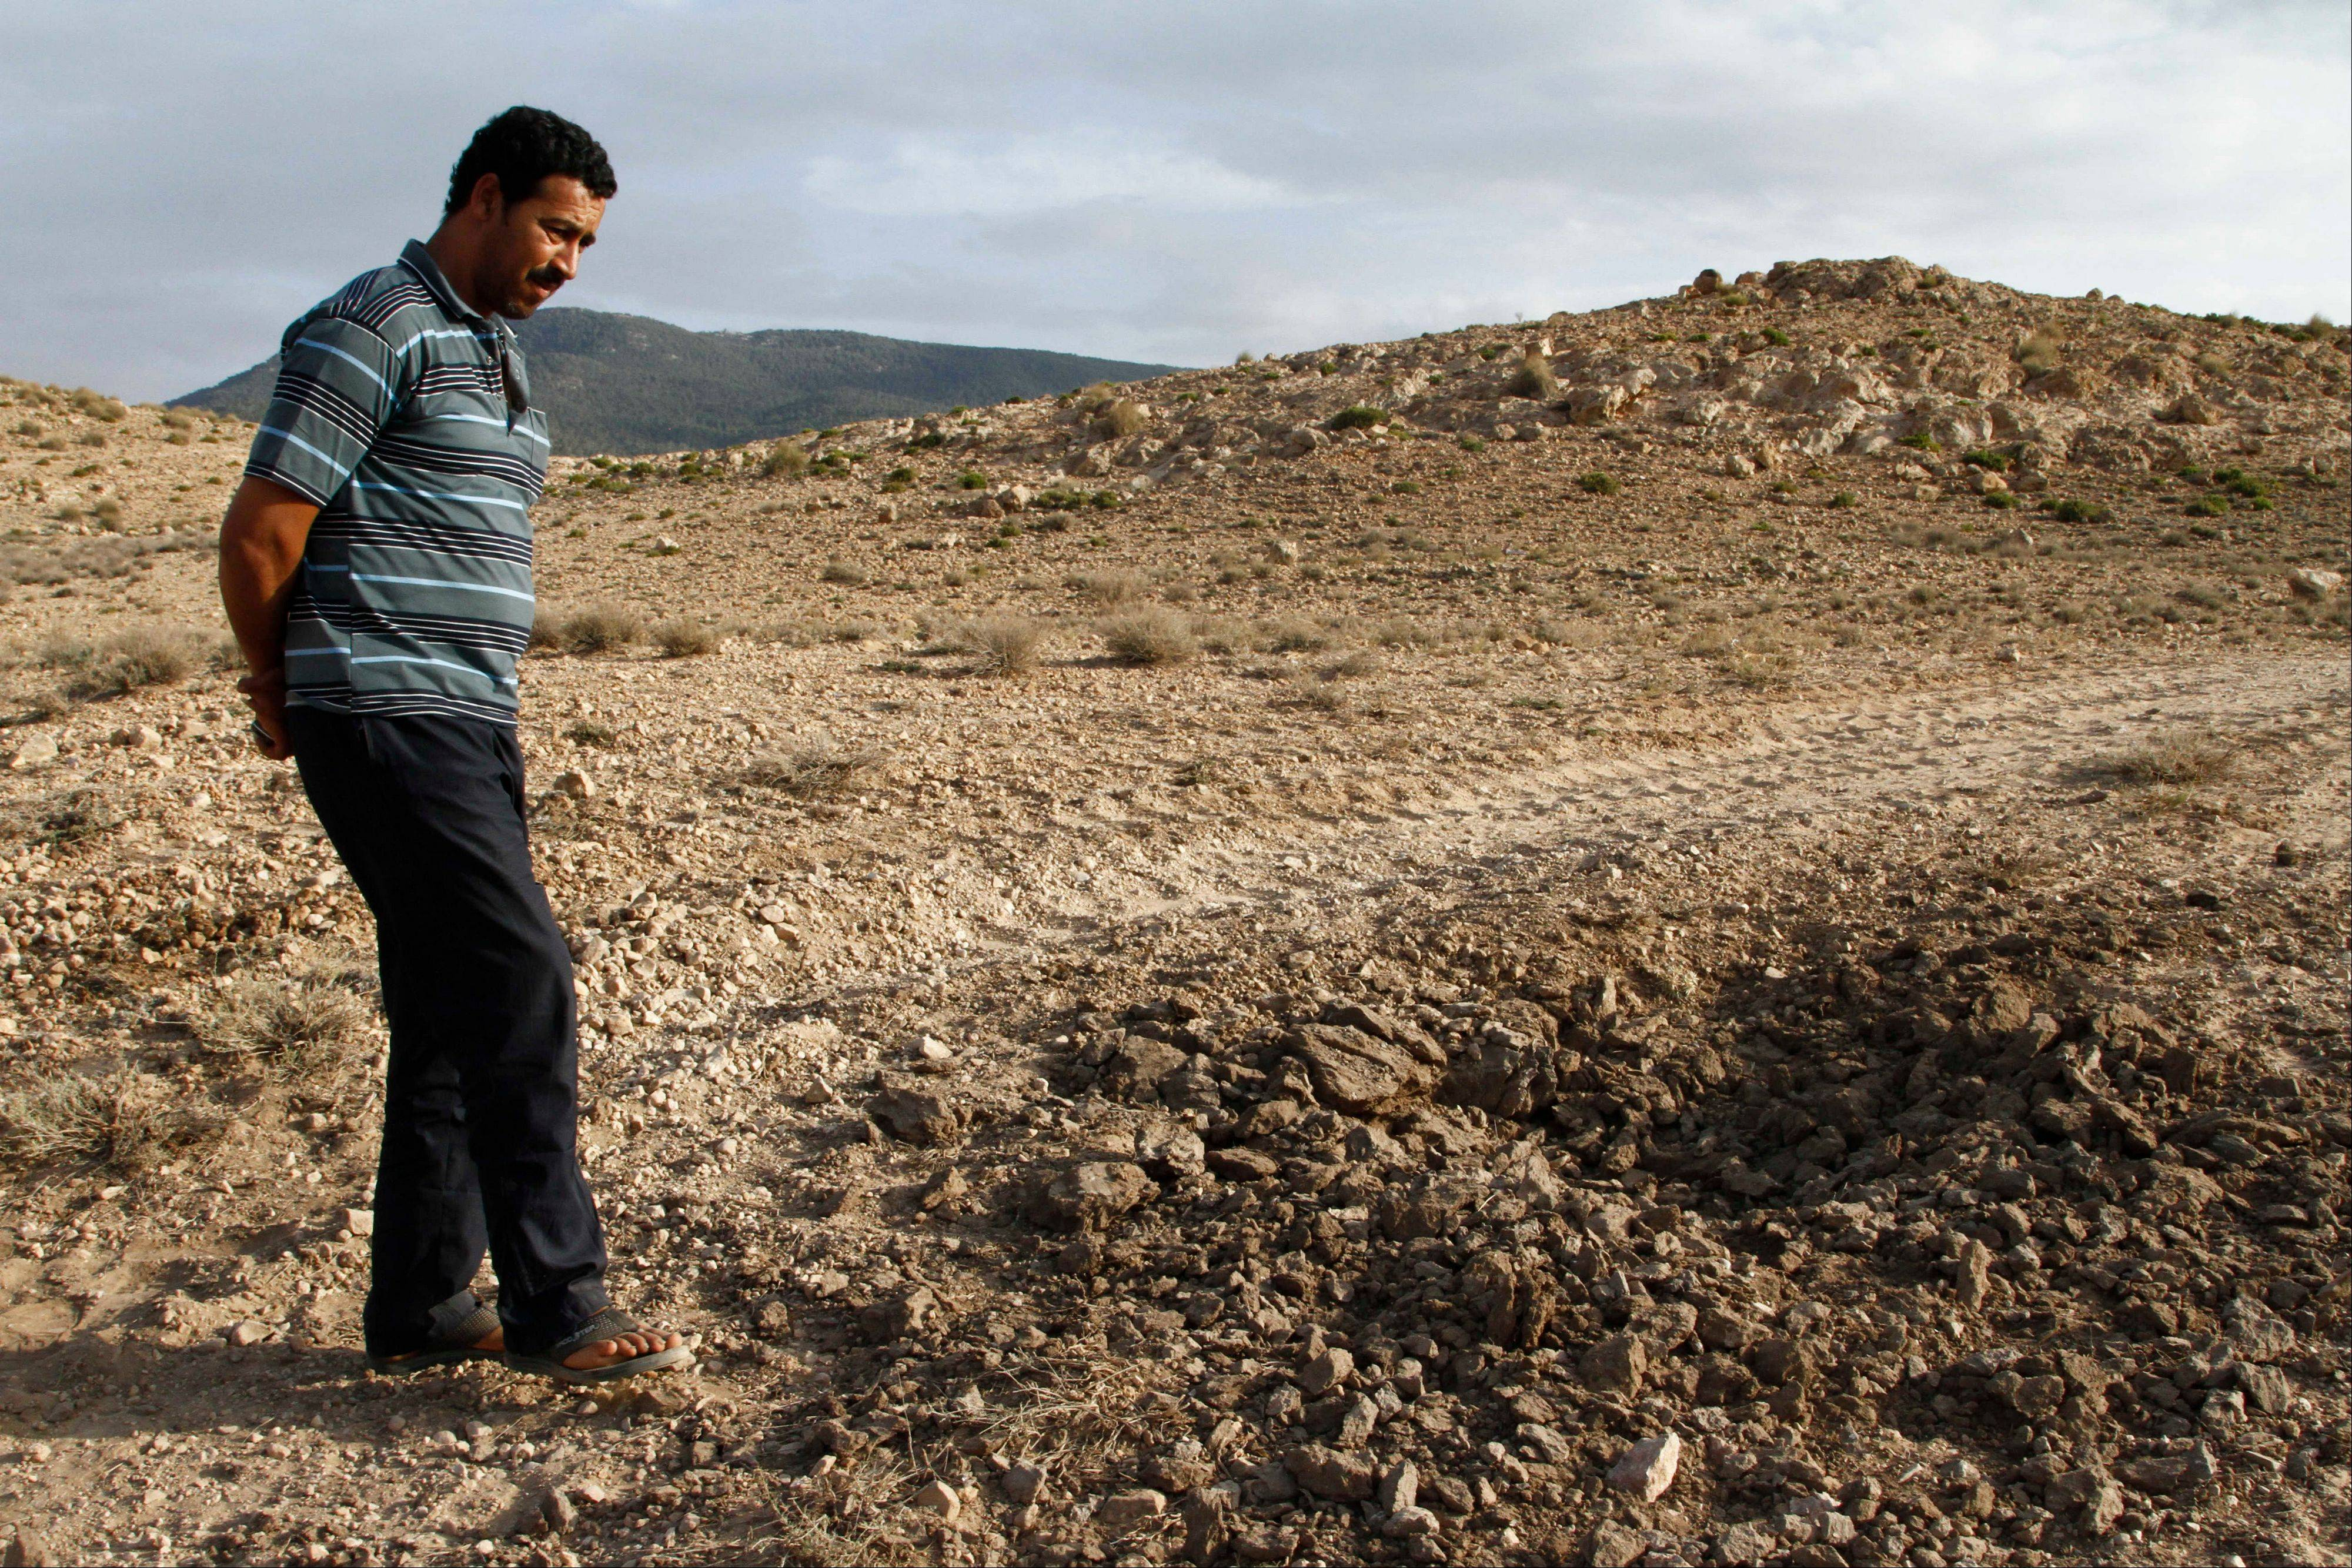 Ezzedine Messaoudi examines on June 24, 2013 the crater left by the roadside bomb that injured his brother and killed several of his sheep earlier that month while the army was searching for jihadis hiding out in Tunisia's Jebel Chaambi region near Algeria. Tunisia, the last, best hope for the Arab Spring, is under increasing threat of an Islamic insurgency.